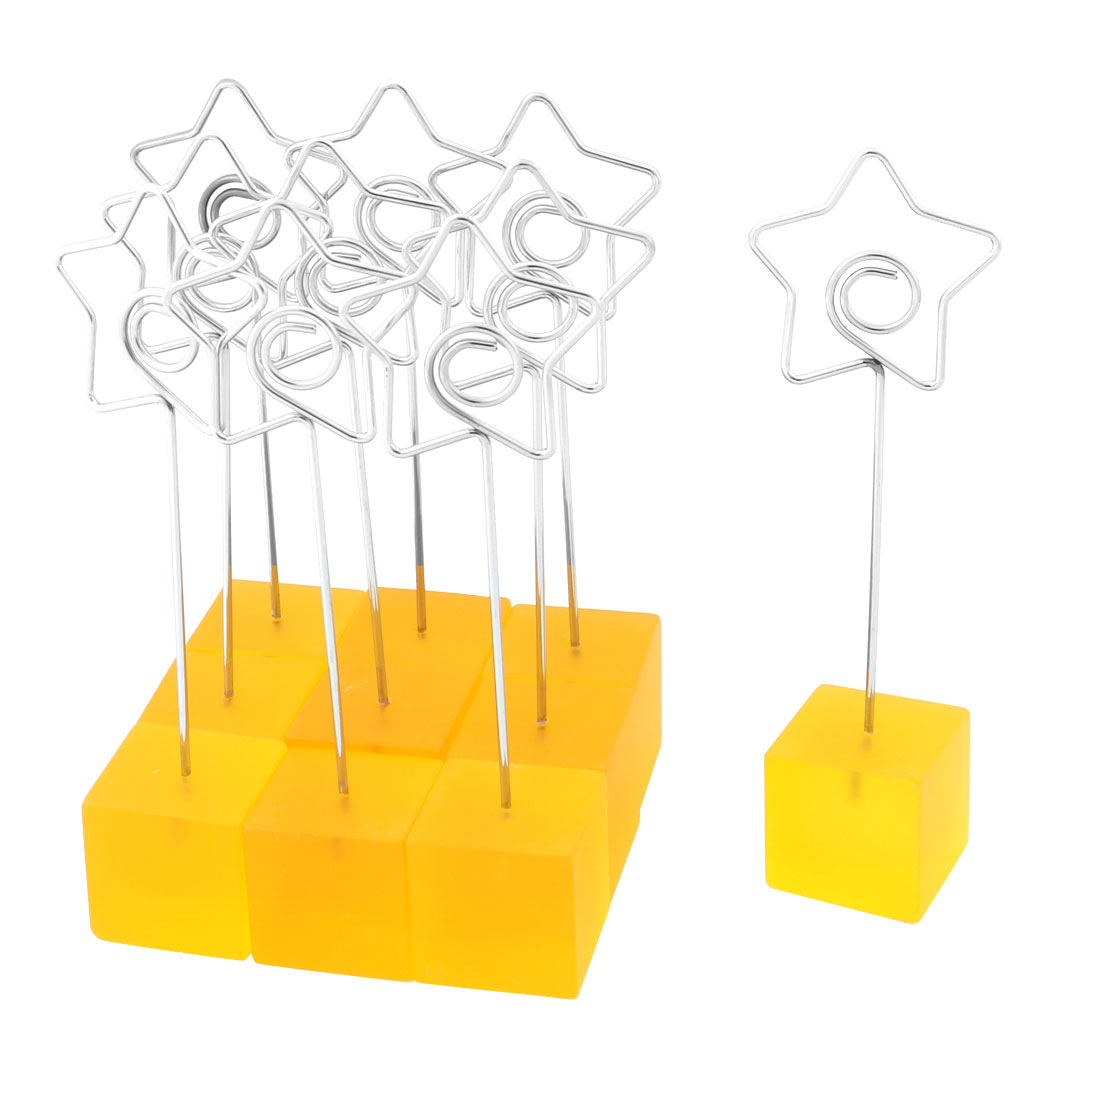 Household Cube Shaped Base Star Design Clamp Note Paper Memo Clip Yellow 10 PCS